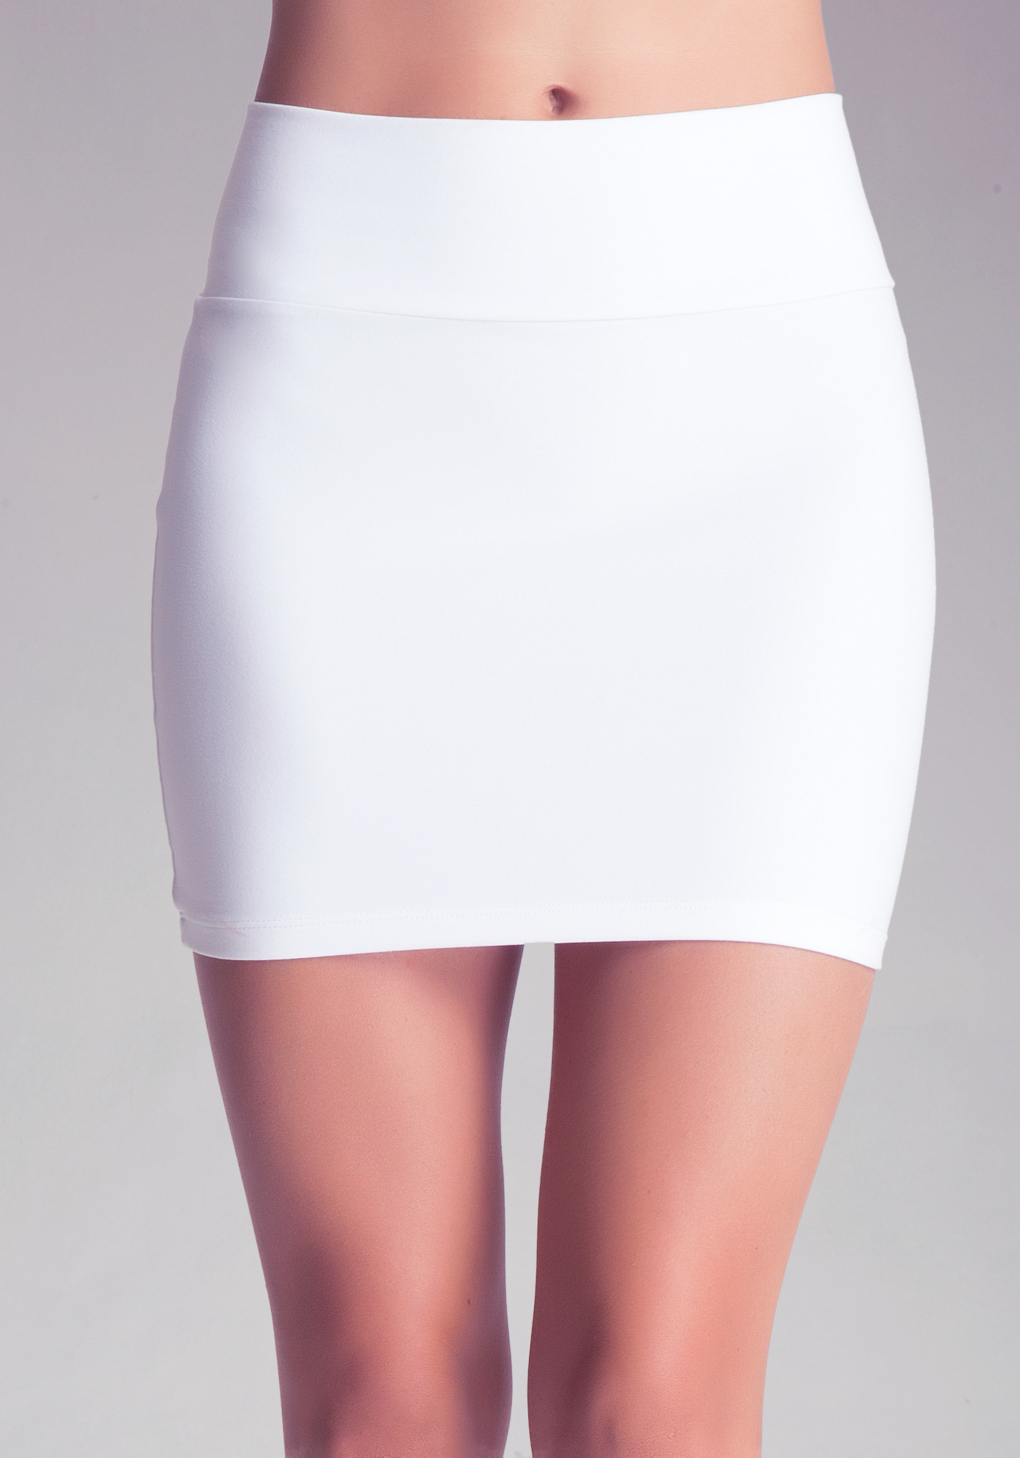 Bebe High Waist Miniskirt in White | Lyst